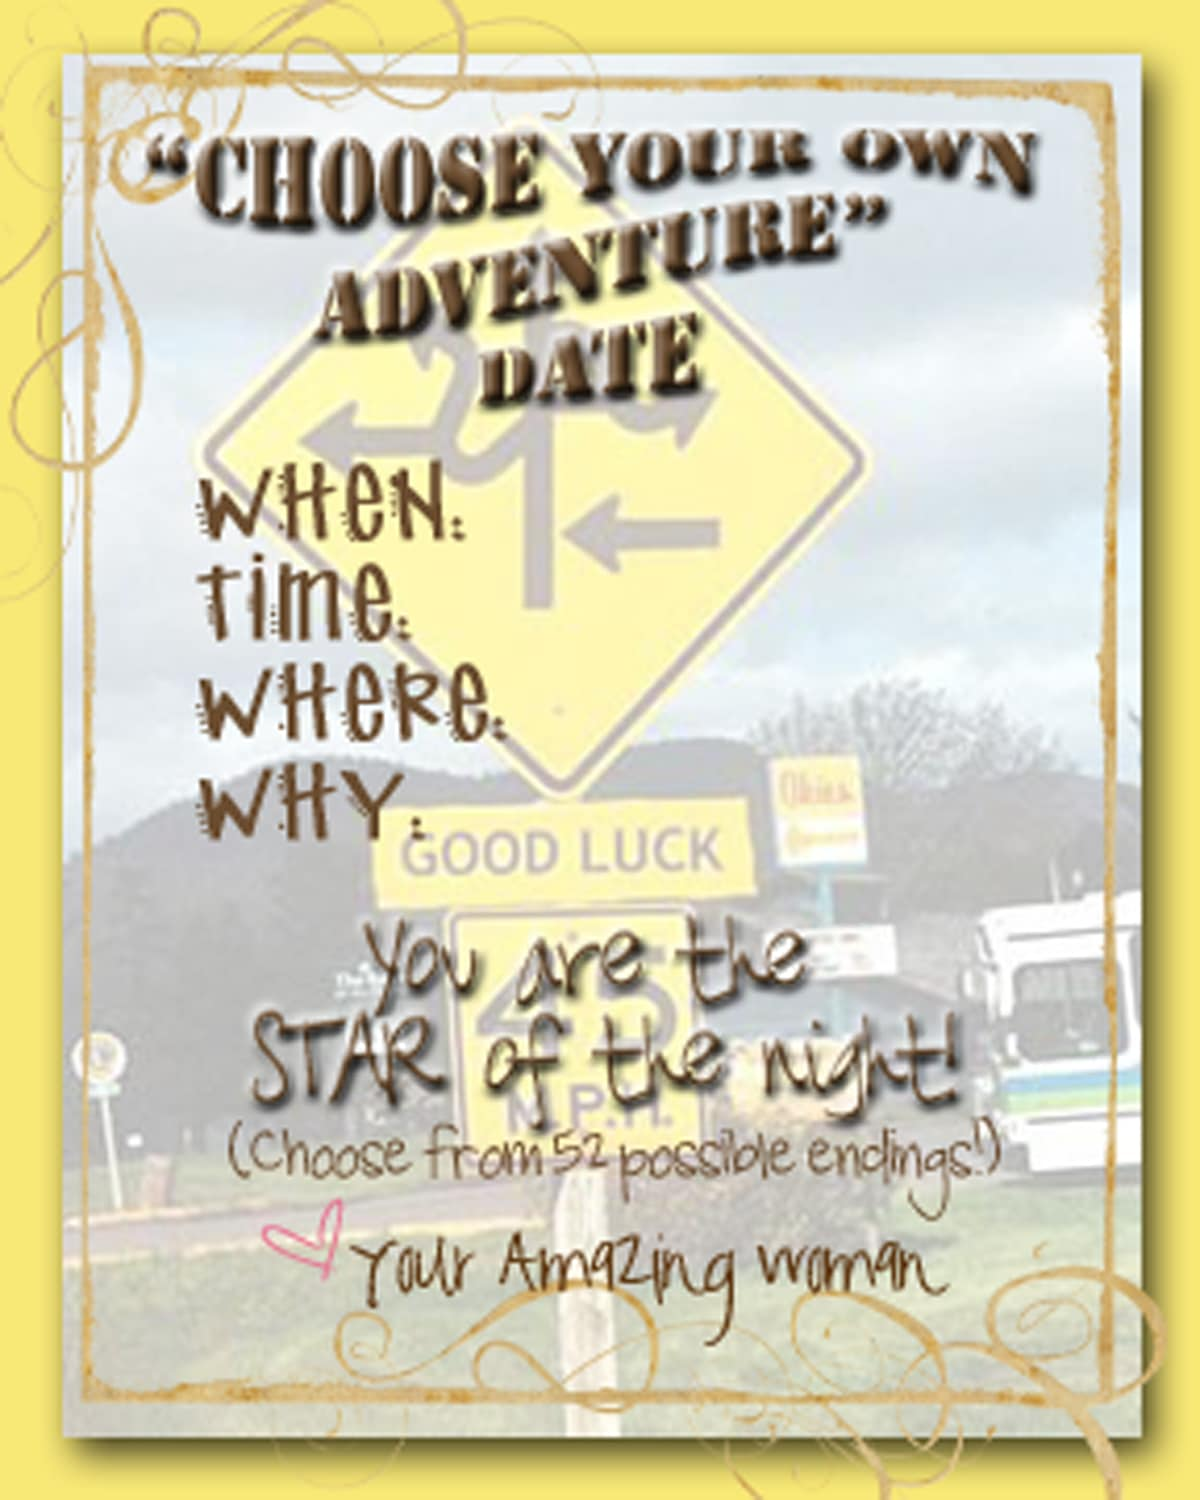 Tea rose home dating diva guest post for Choose your own home